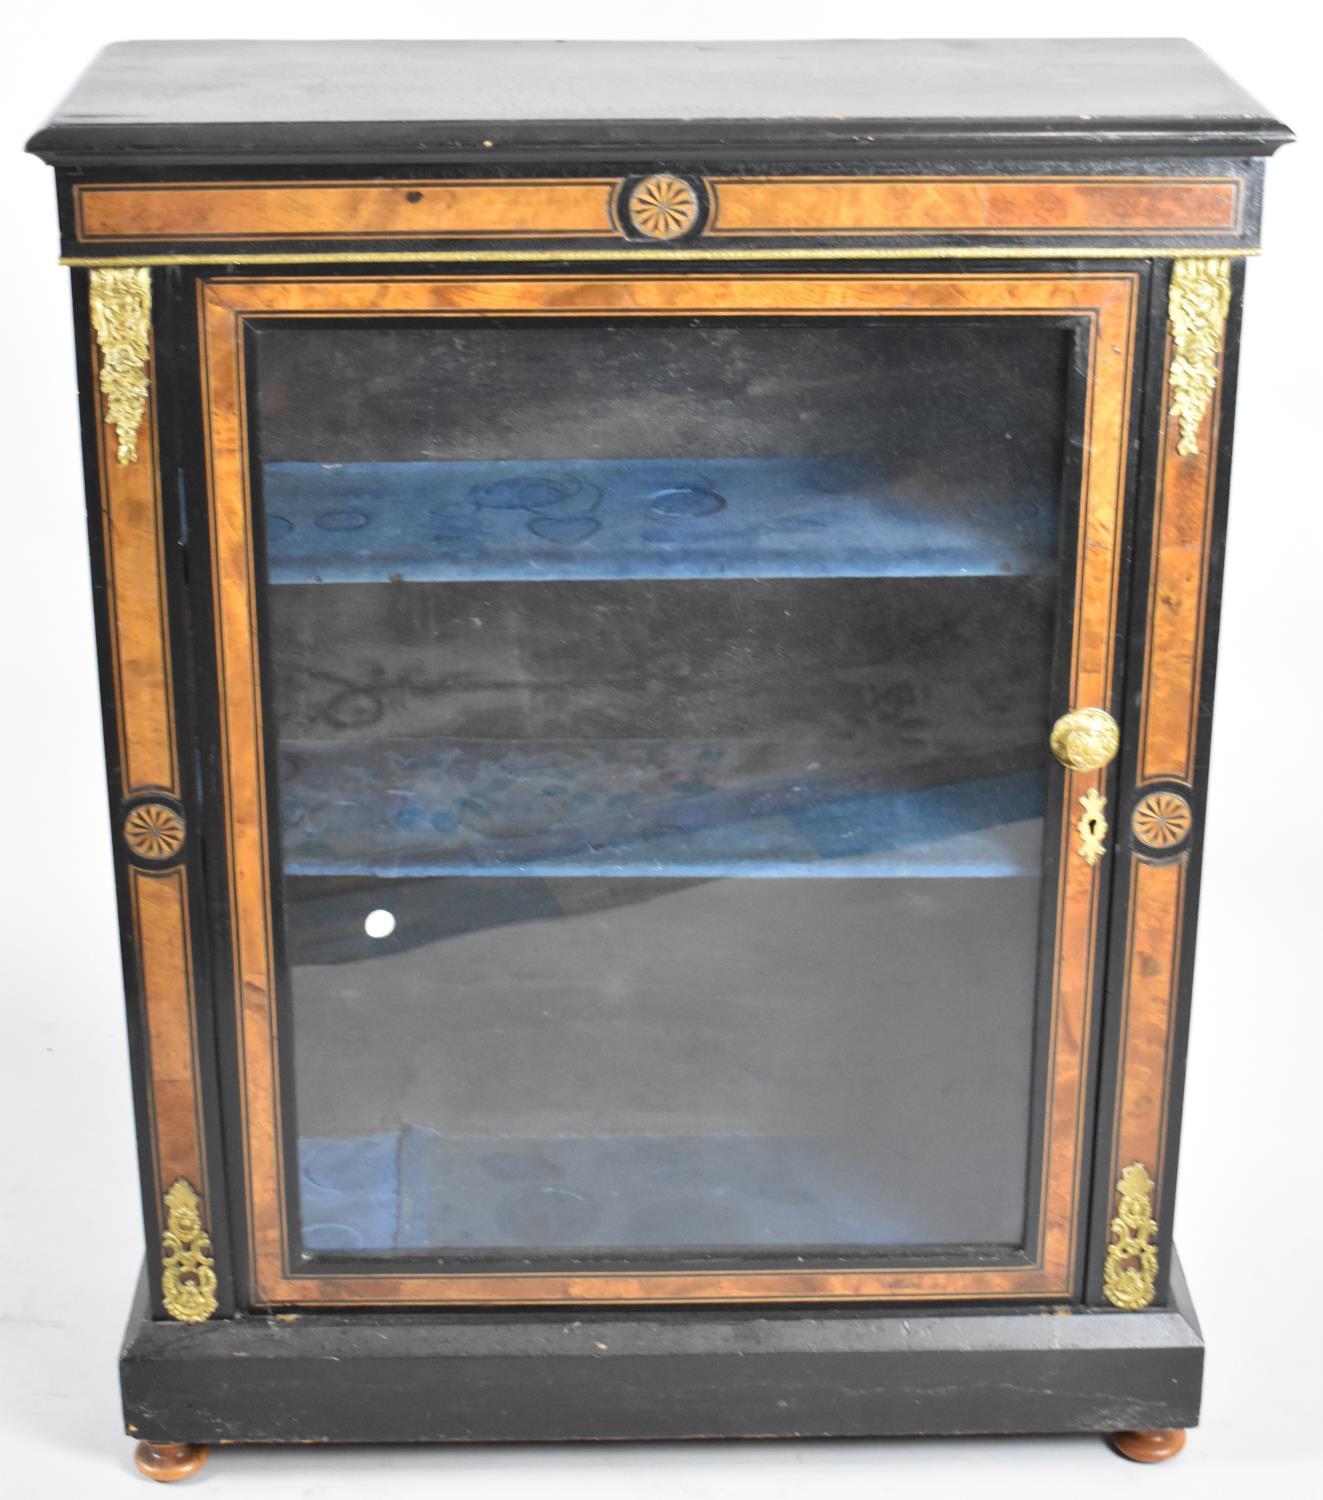 A 19th Century Ormolu Mounted Ebonised Inlaid Credenza with Glazed Door to Three Shelved Interior, - Image 2 of 2